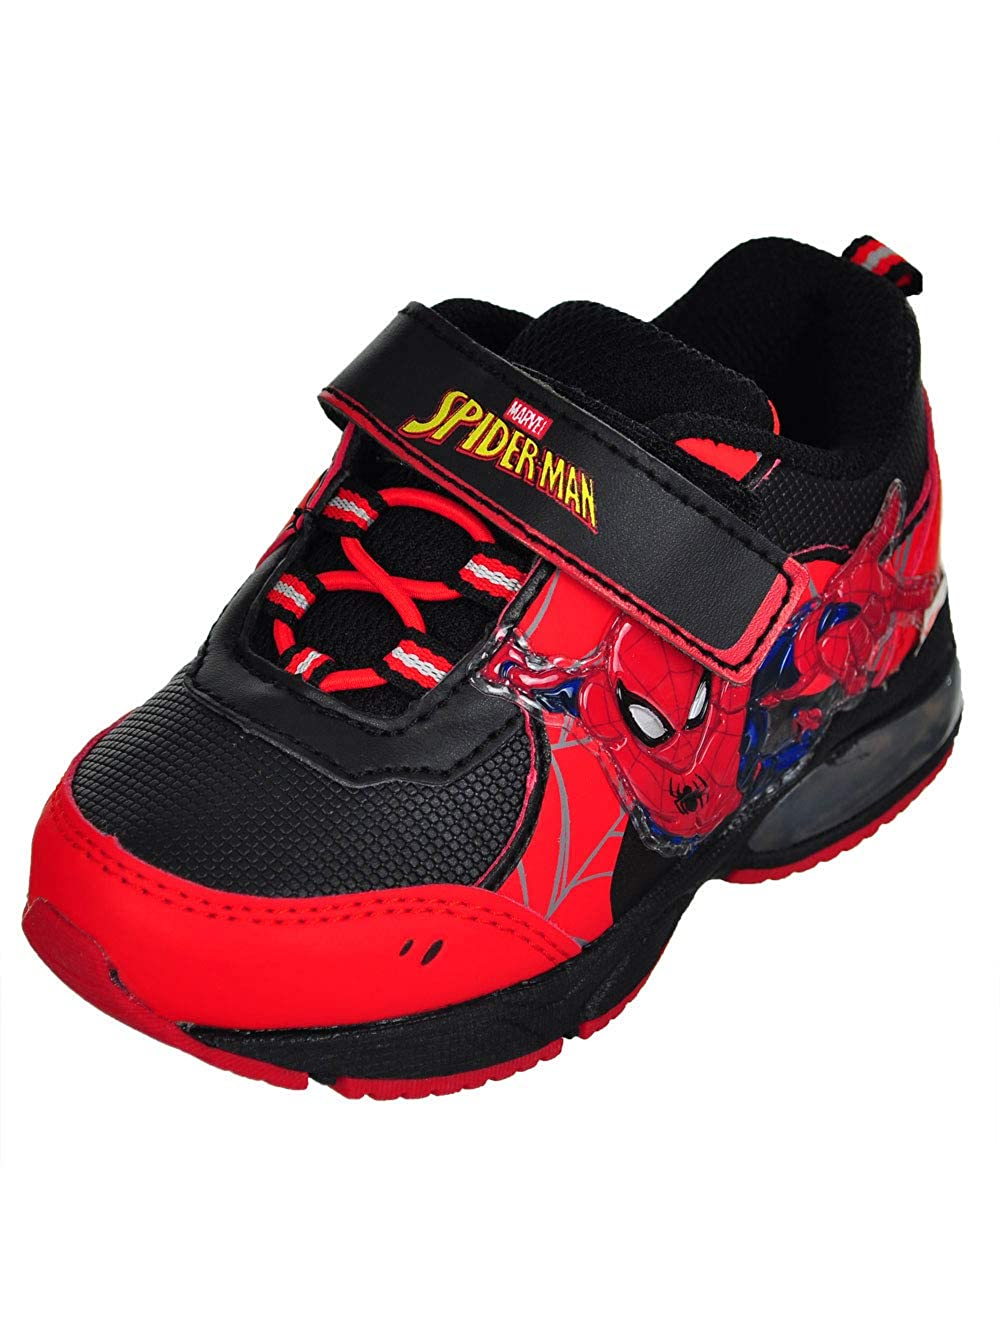 f8527c4a63b48 Favorite Characters Spiderman Lighted Athletic Shoes (Toddler/LittleKid)  Red/Black